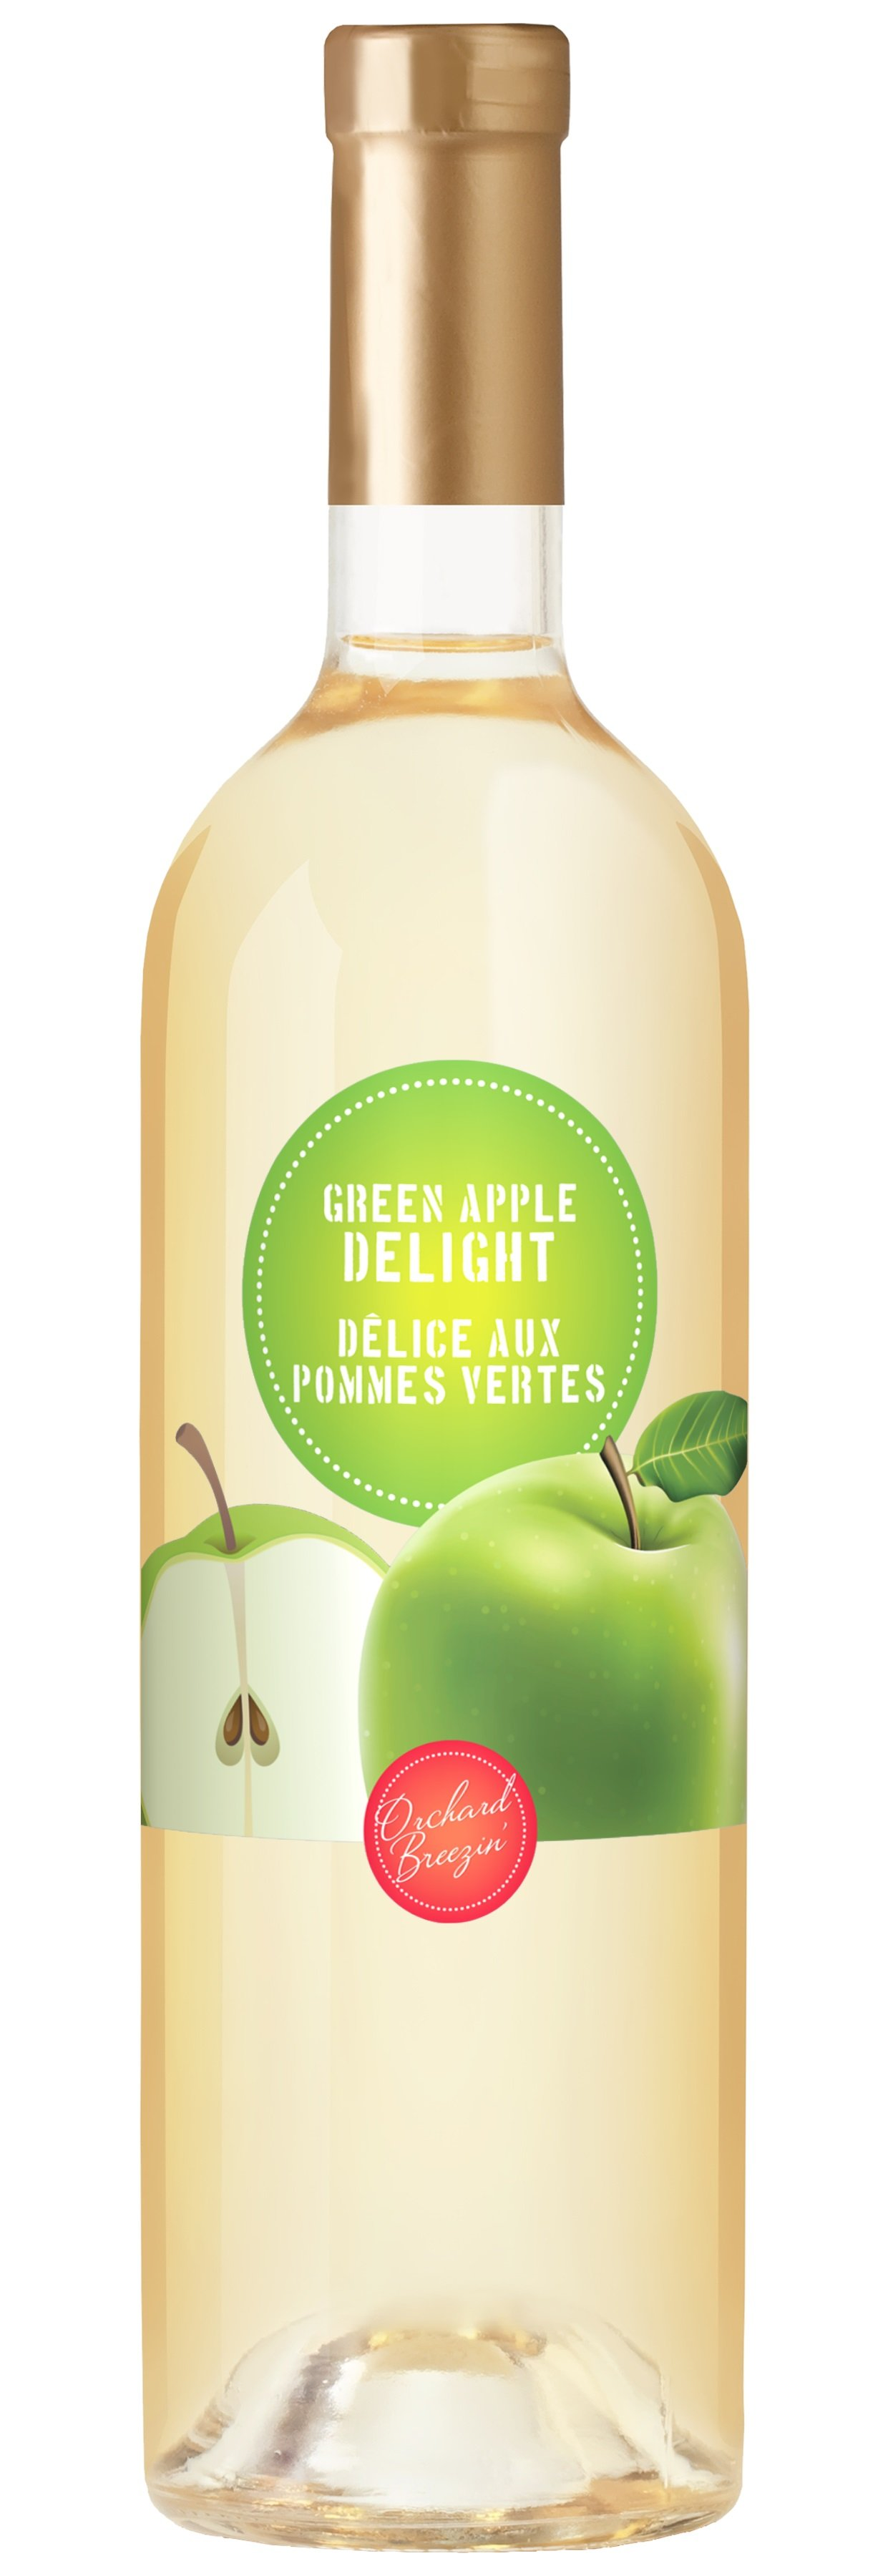 https://0901.nccdn.net/4_2/000/000/071/7bf/OB_Bottle_GreenAppleDelight.jpg